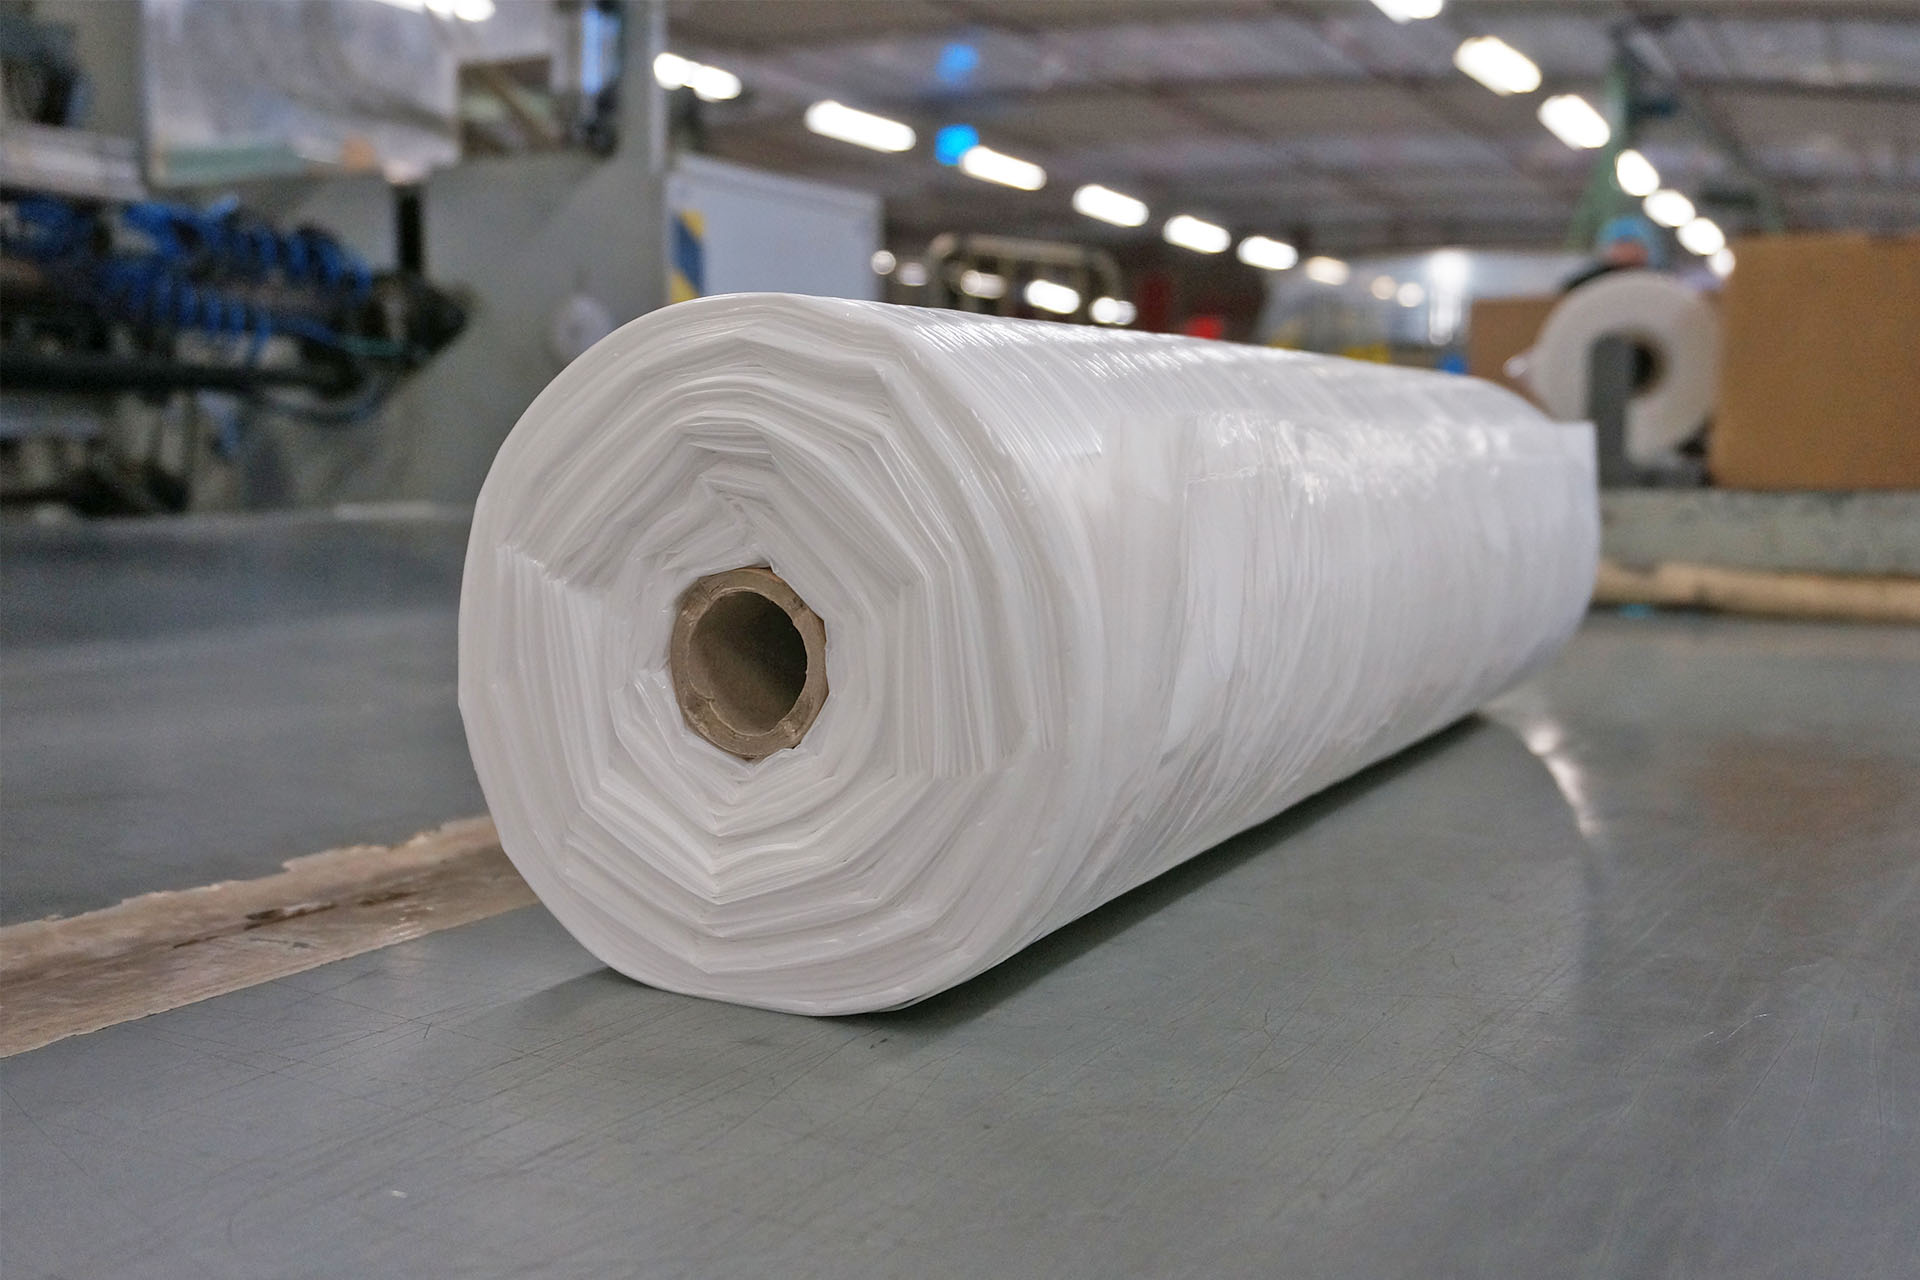 dry-cleaning covers